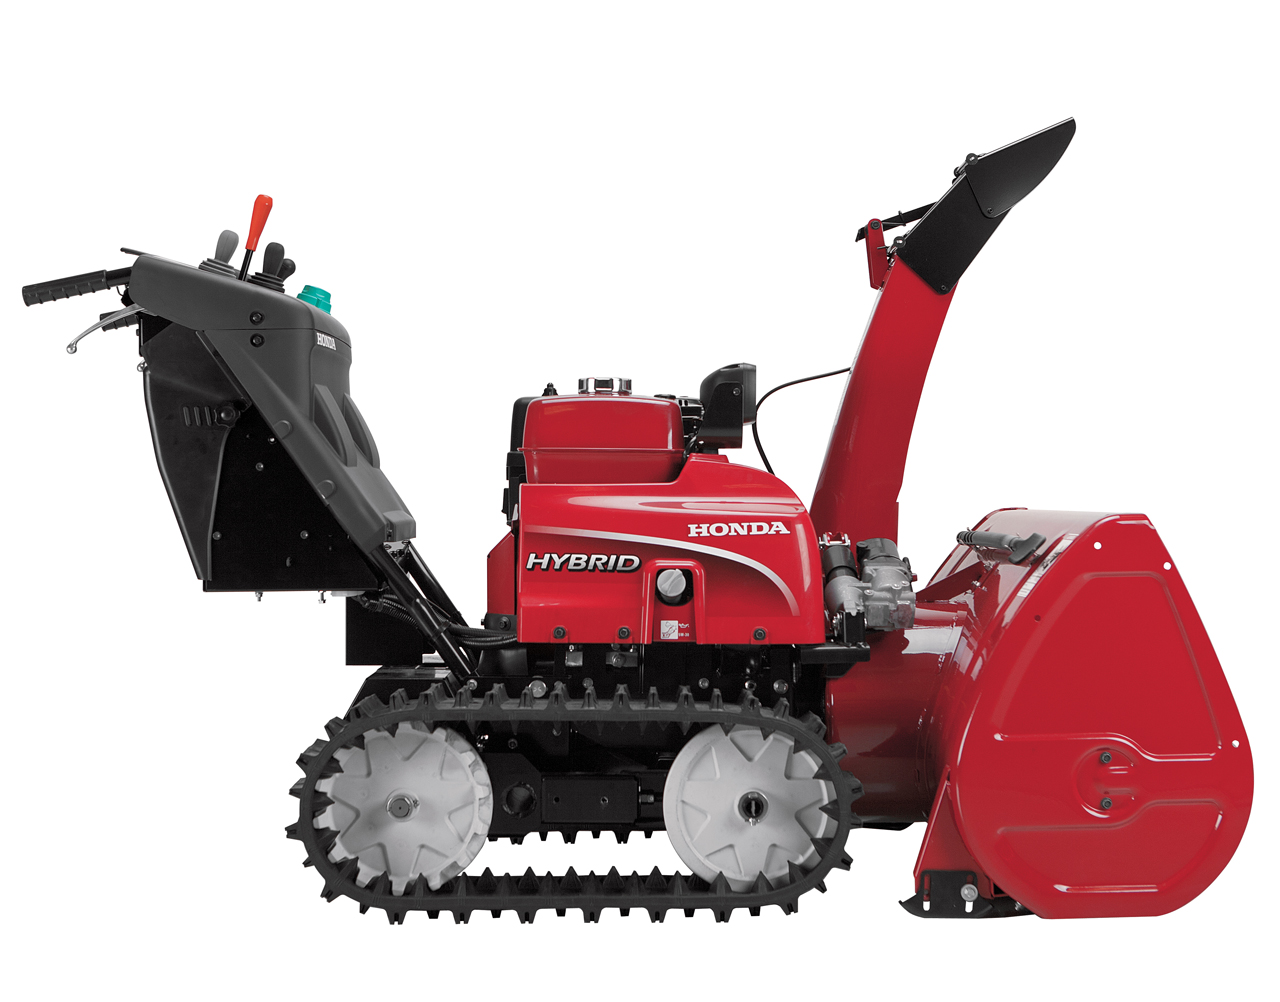 Honda gears up to electrify winter with hybrid snowblower ...